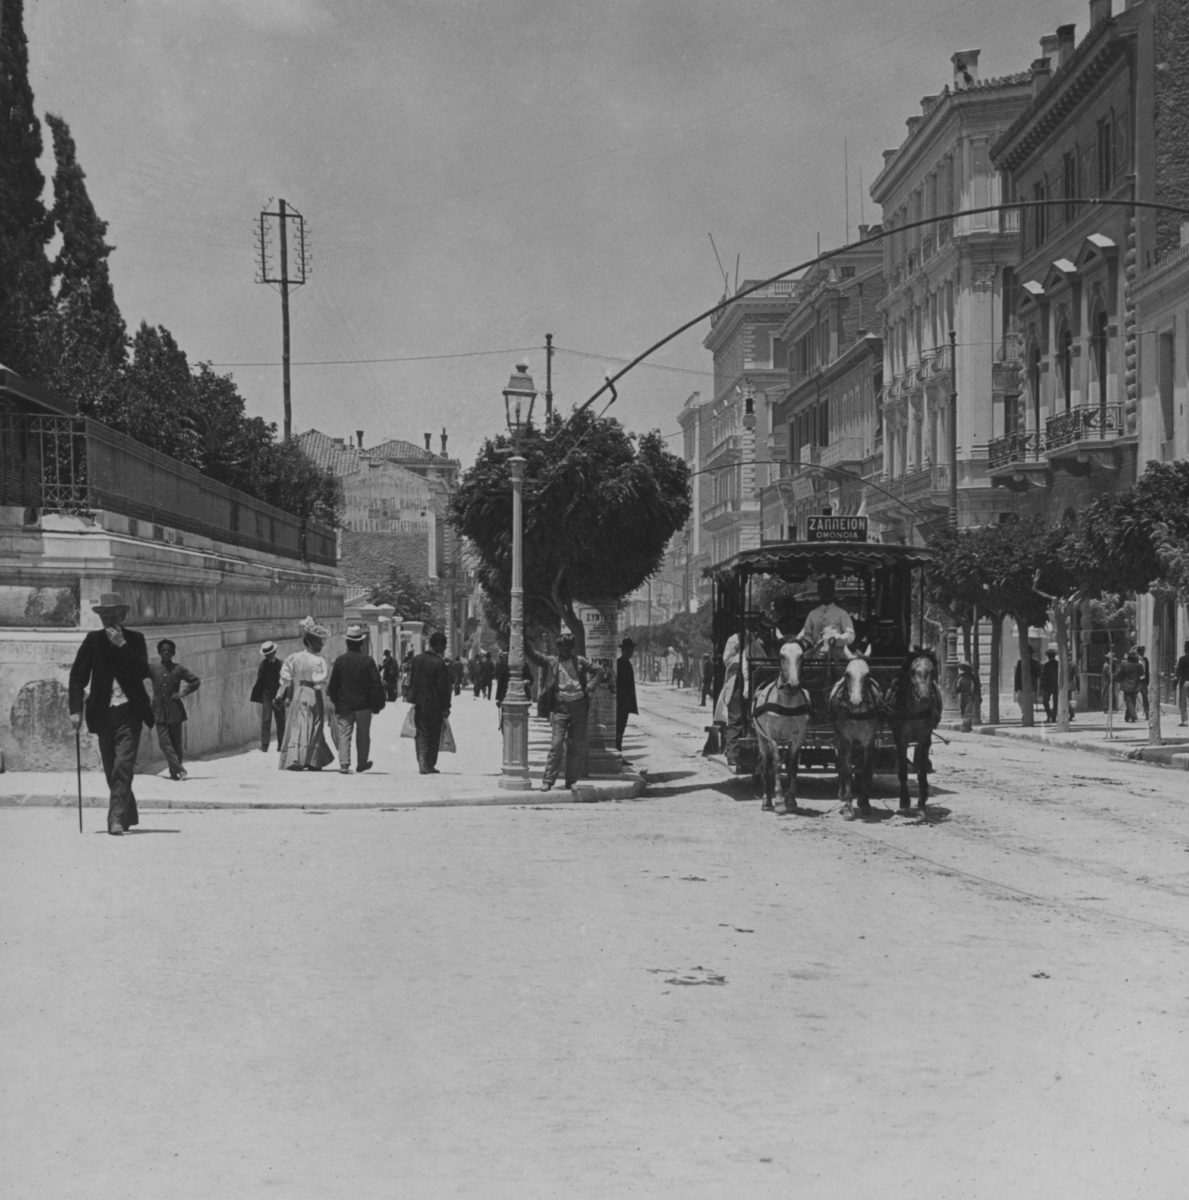 Stadiou Street in the late 19th century. Photographer unknown. Courtesy of the Nikos Politis Collection